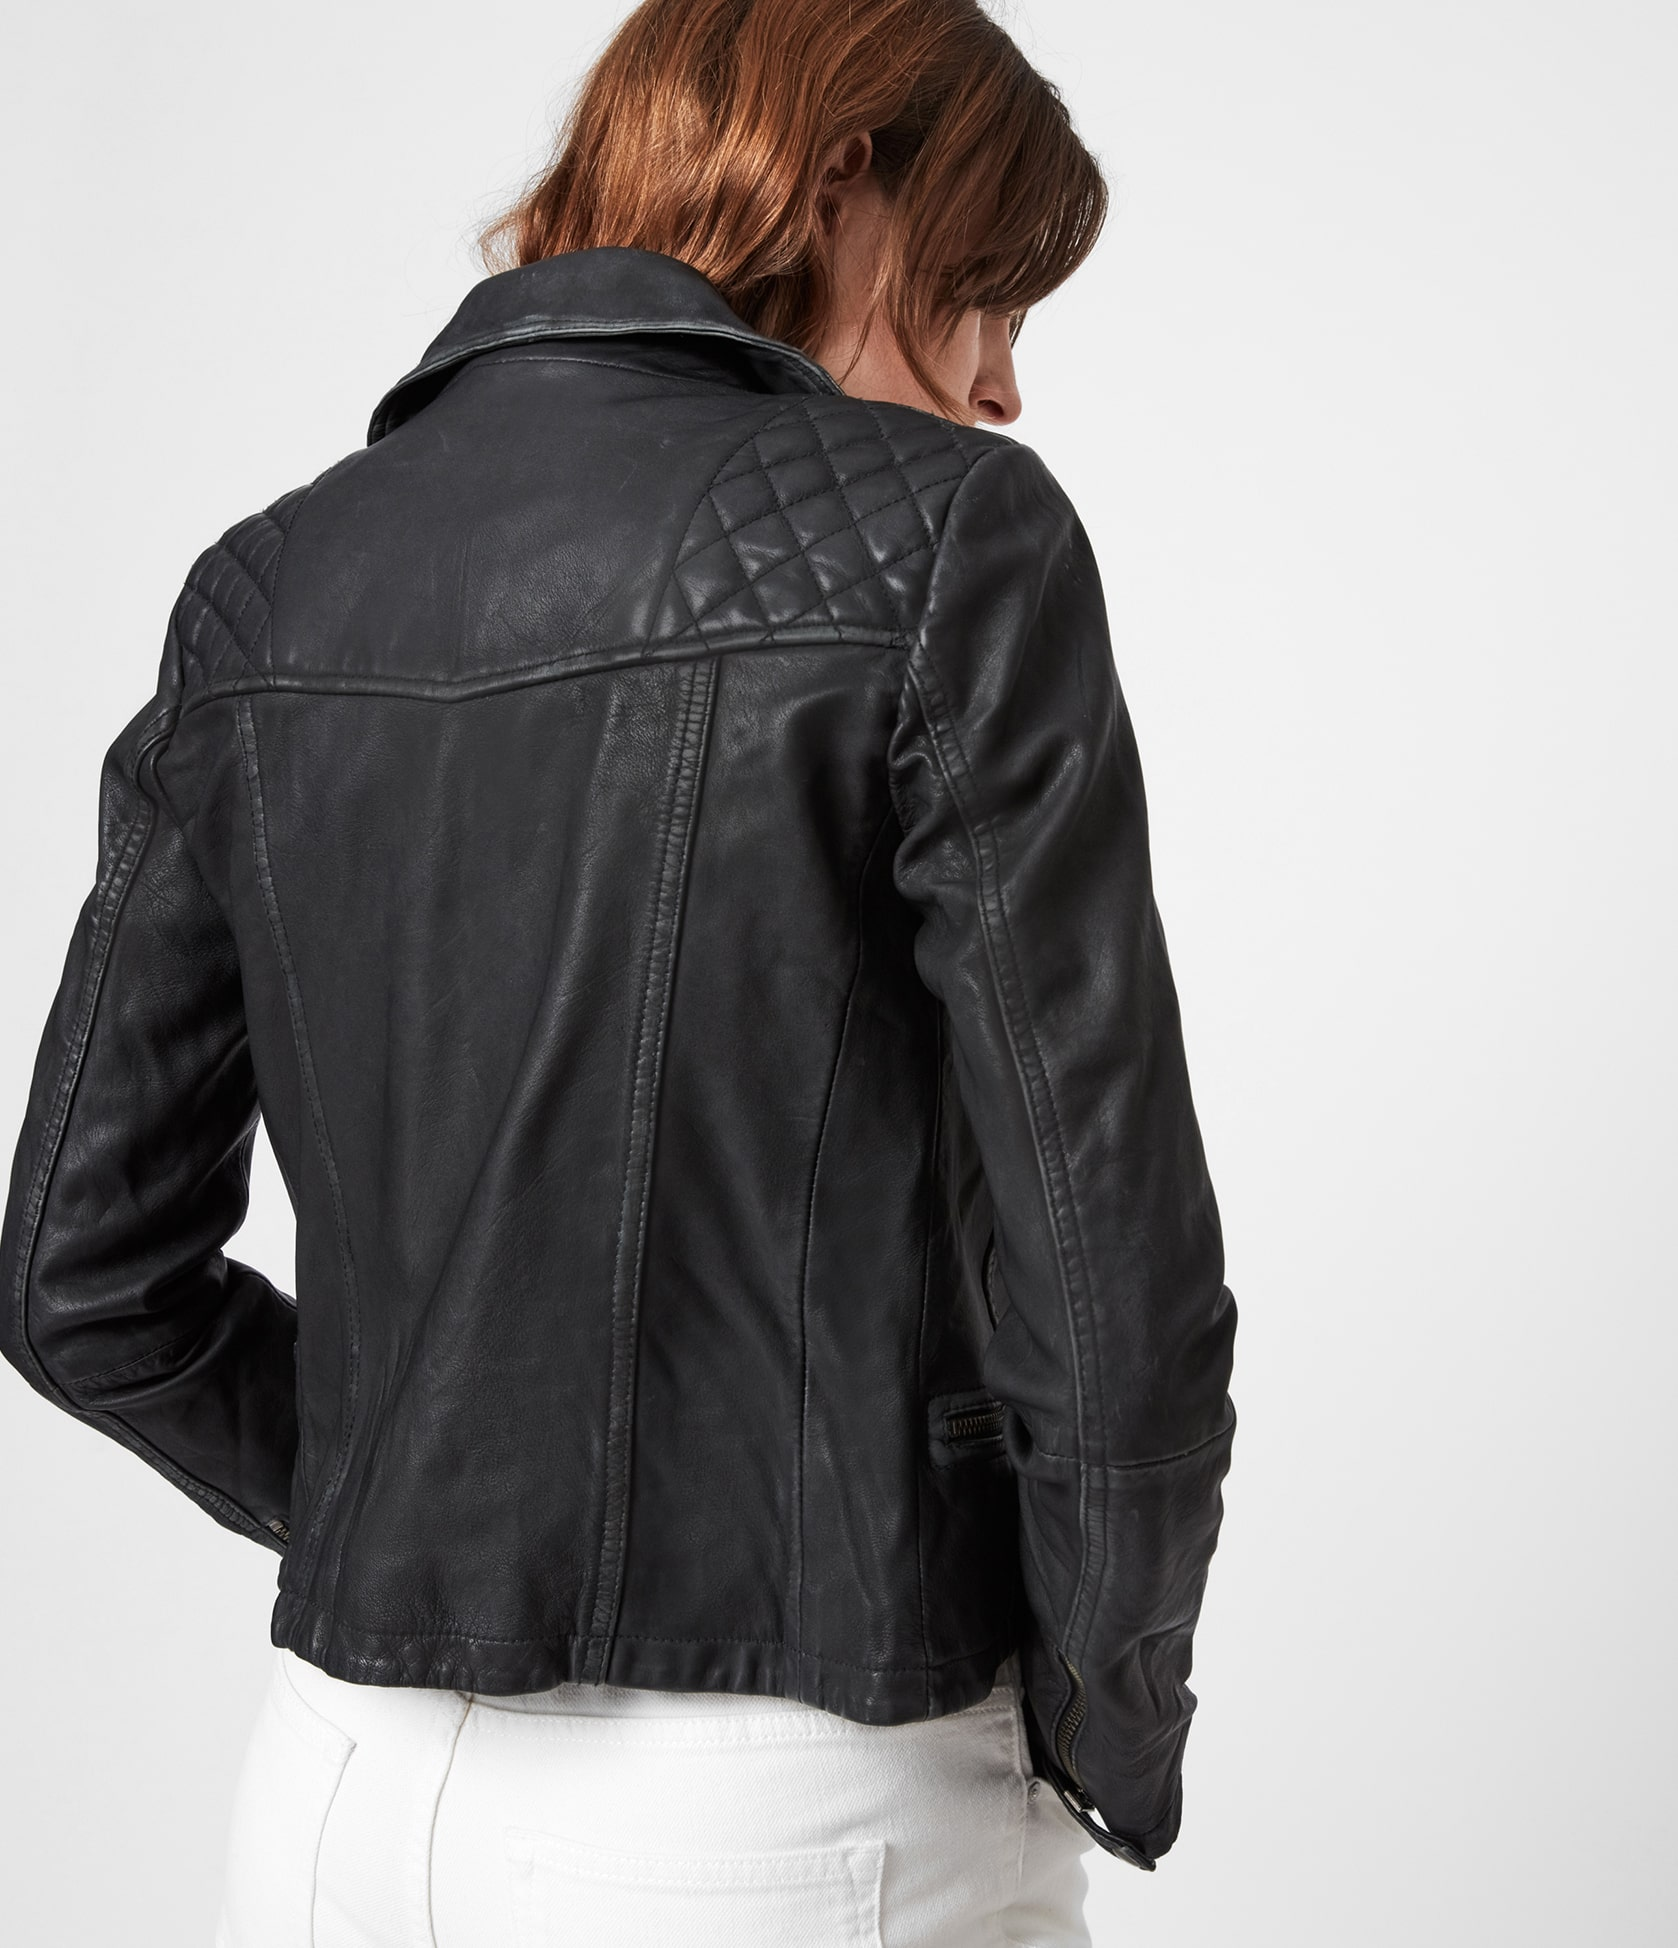 Women's Cargo Leather Jacket - Back View